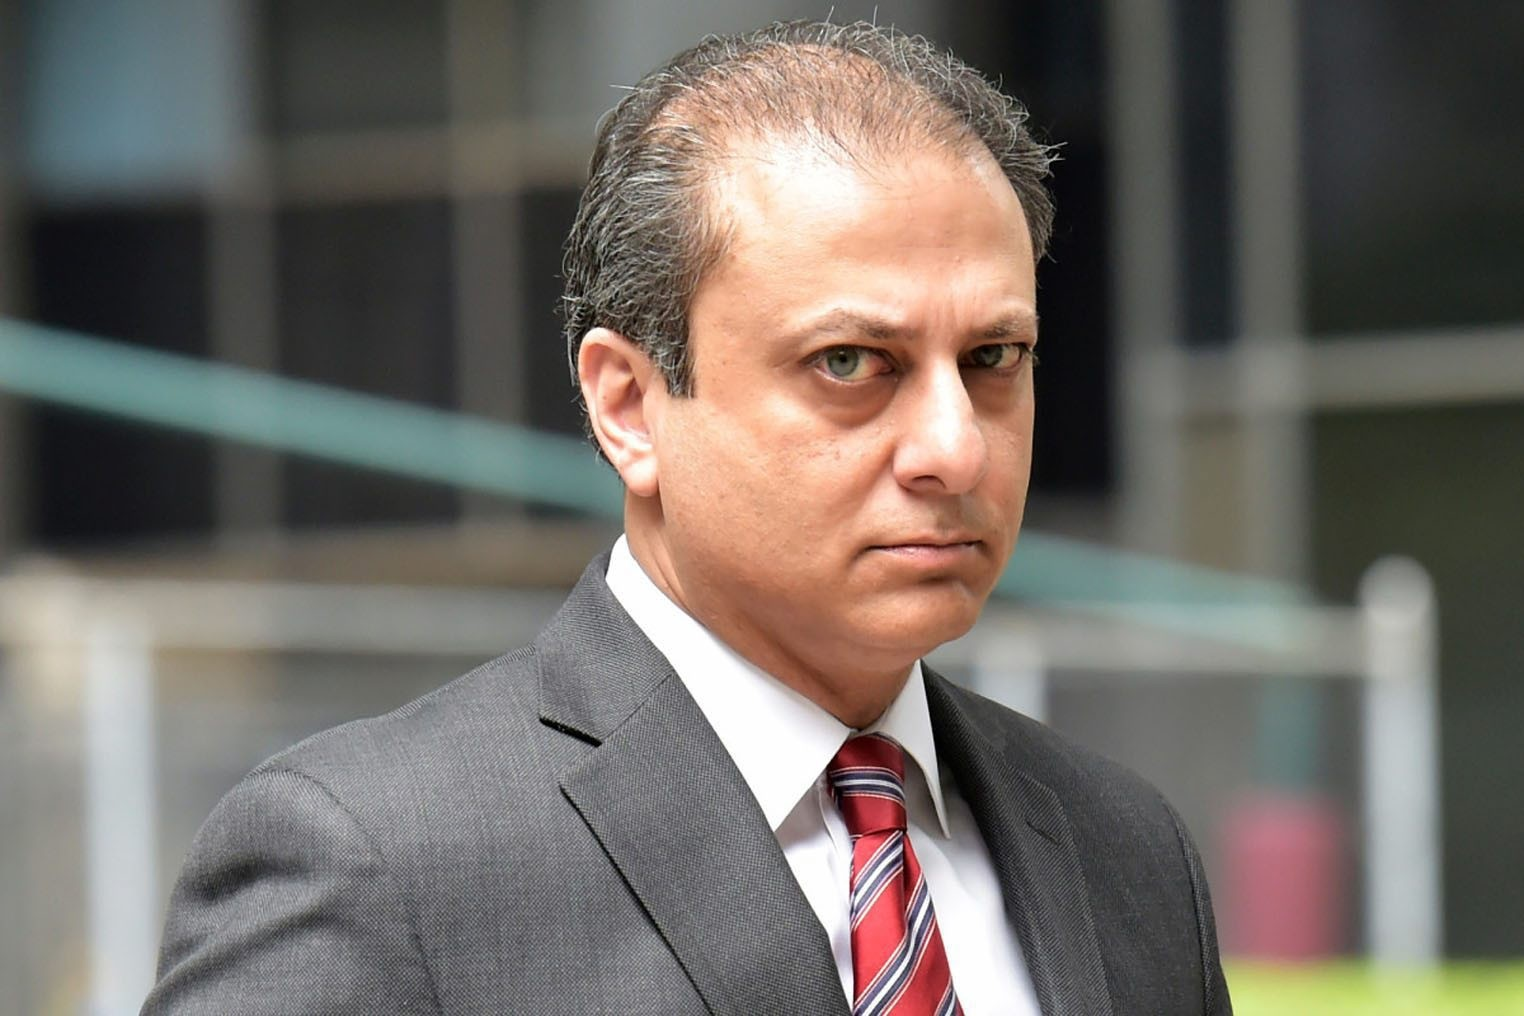 Bharara is the prosecutor behind Reza Zarrabu2019s case. He has worked with Senator Schumer, who has ties with FETu00d6, until 2009 and was nominated by him.